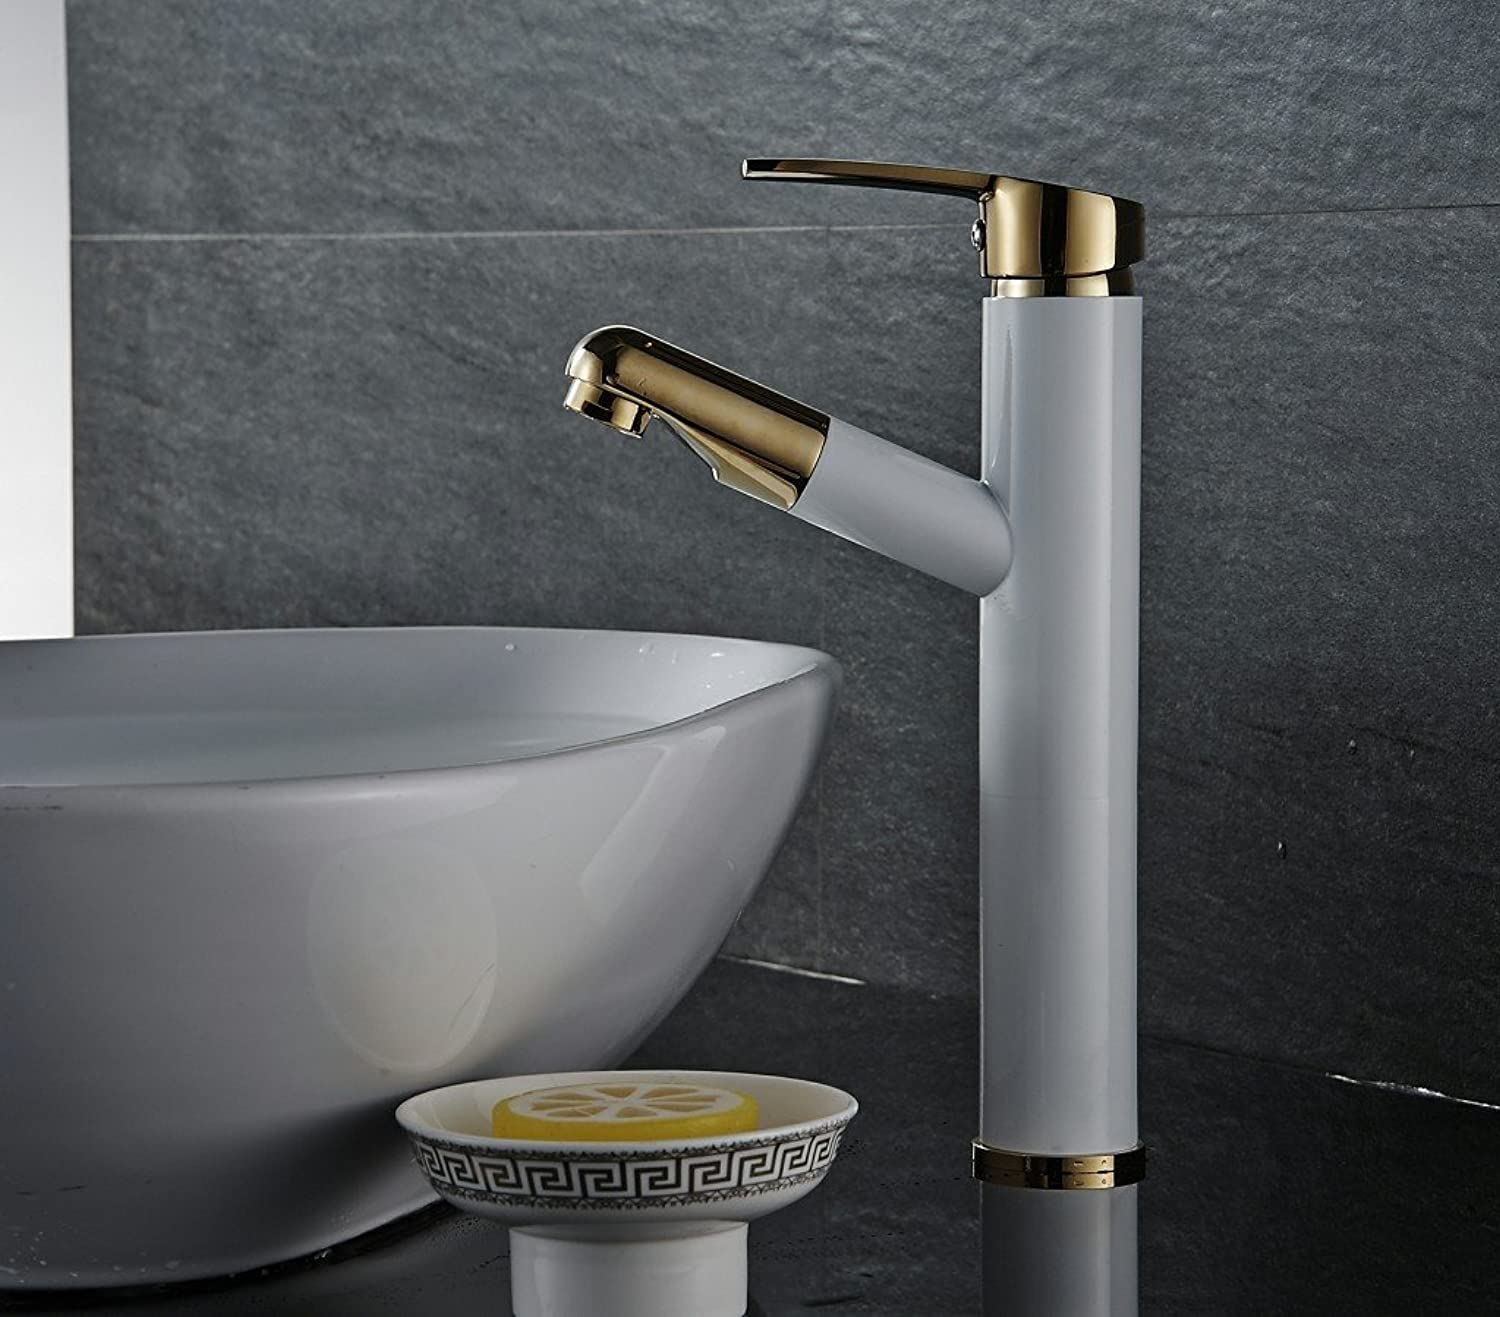 Jsnxzx All-in-One Full Copper Pull-Down Continental Plus High Cold Water Faucet